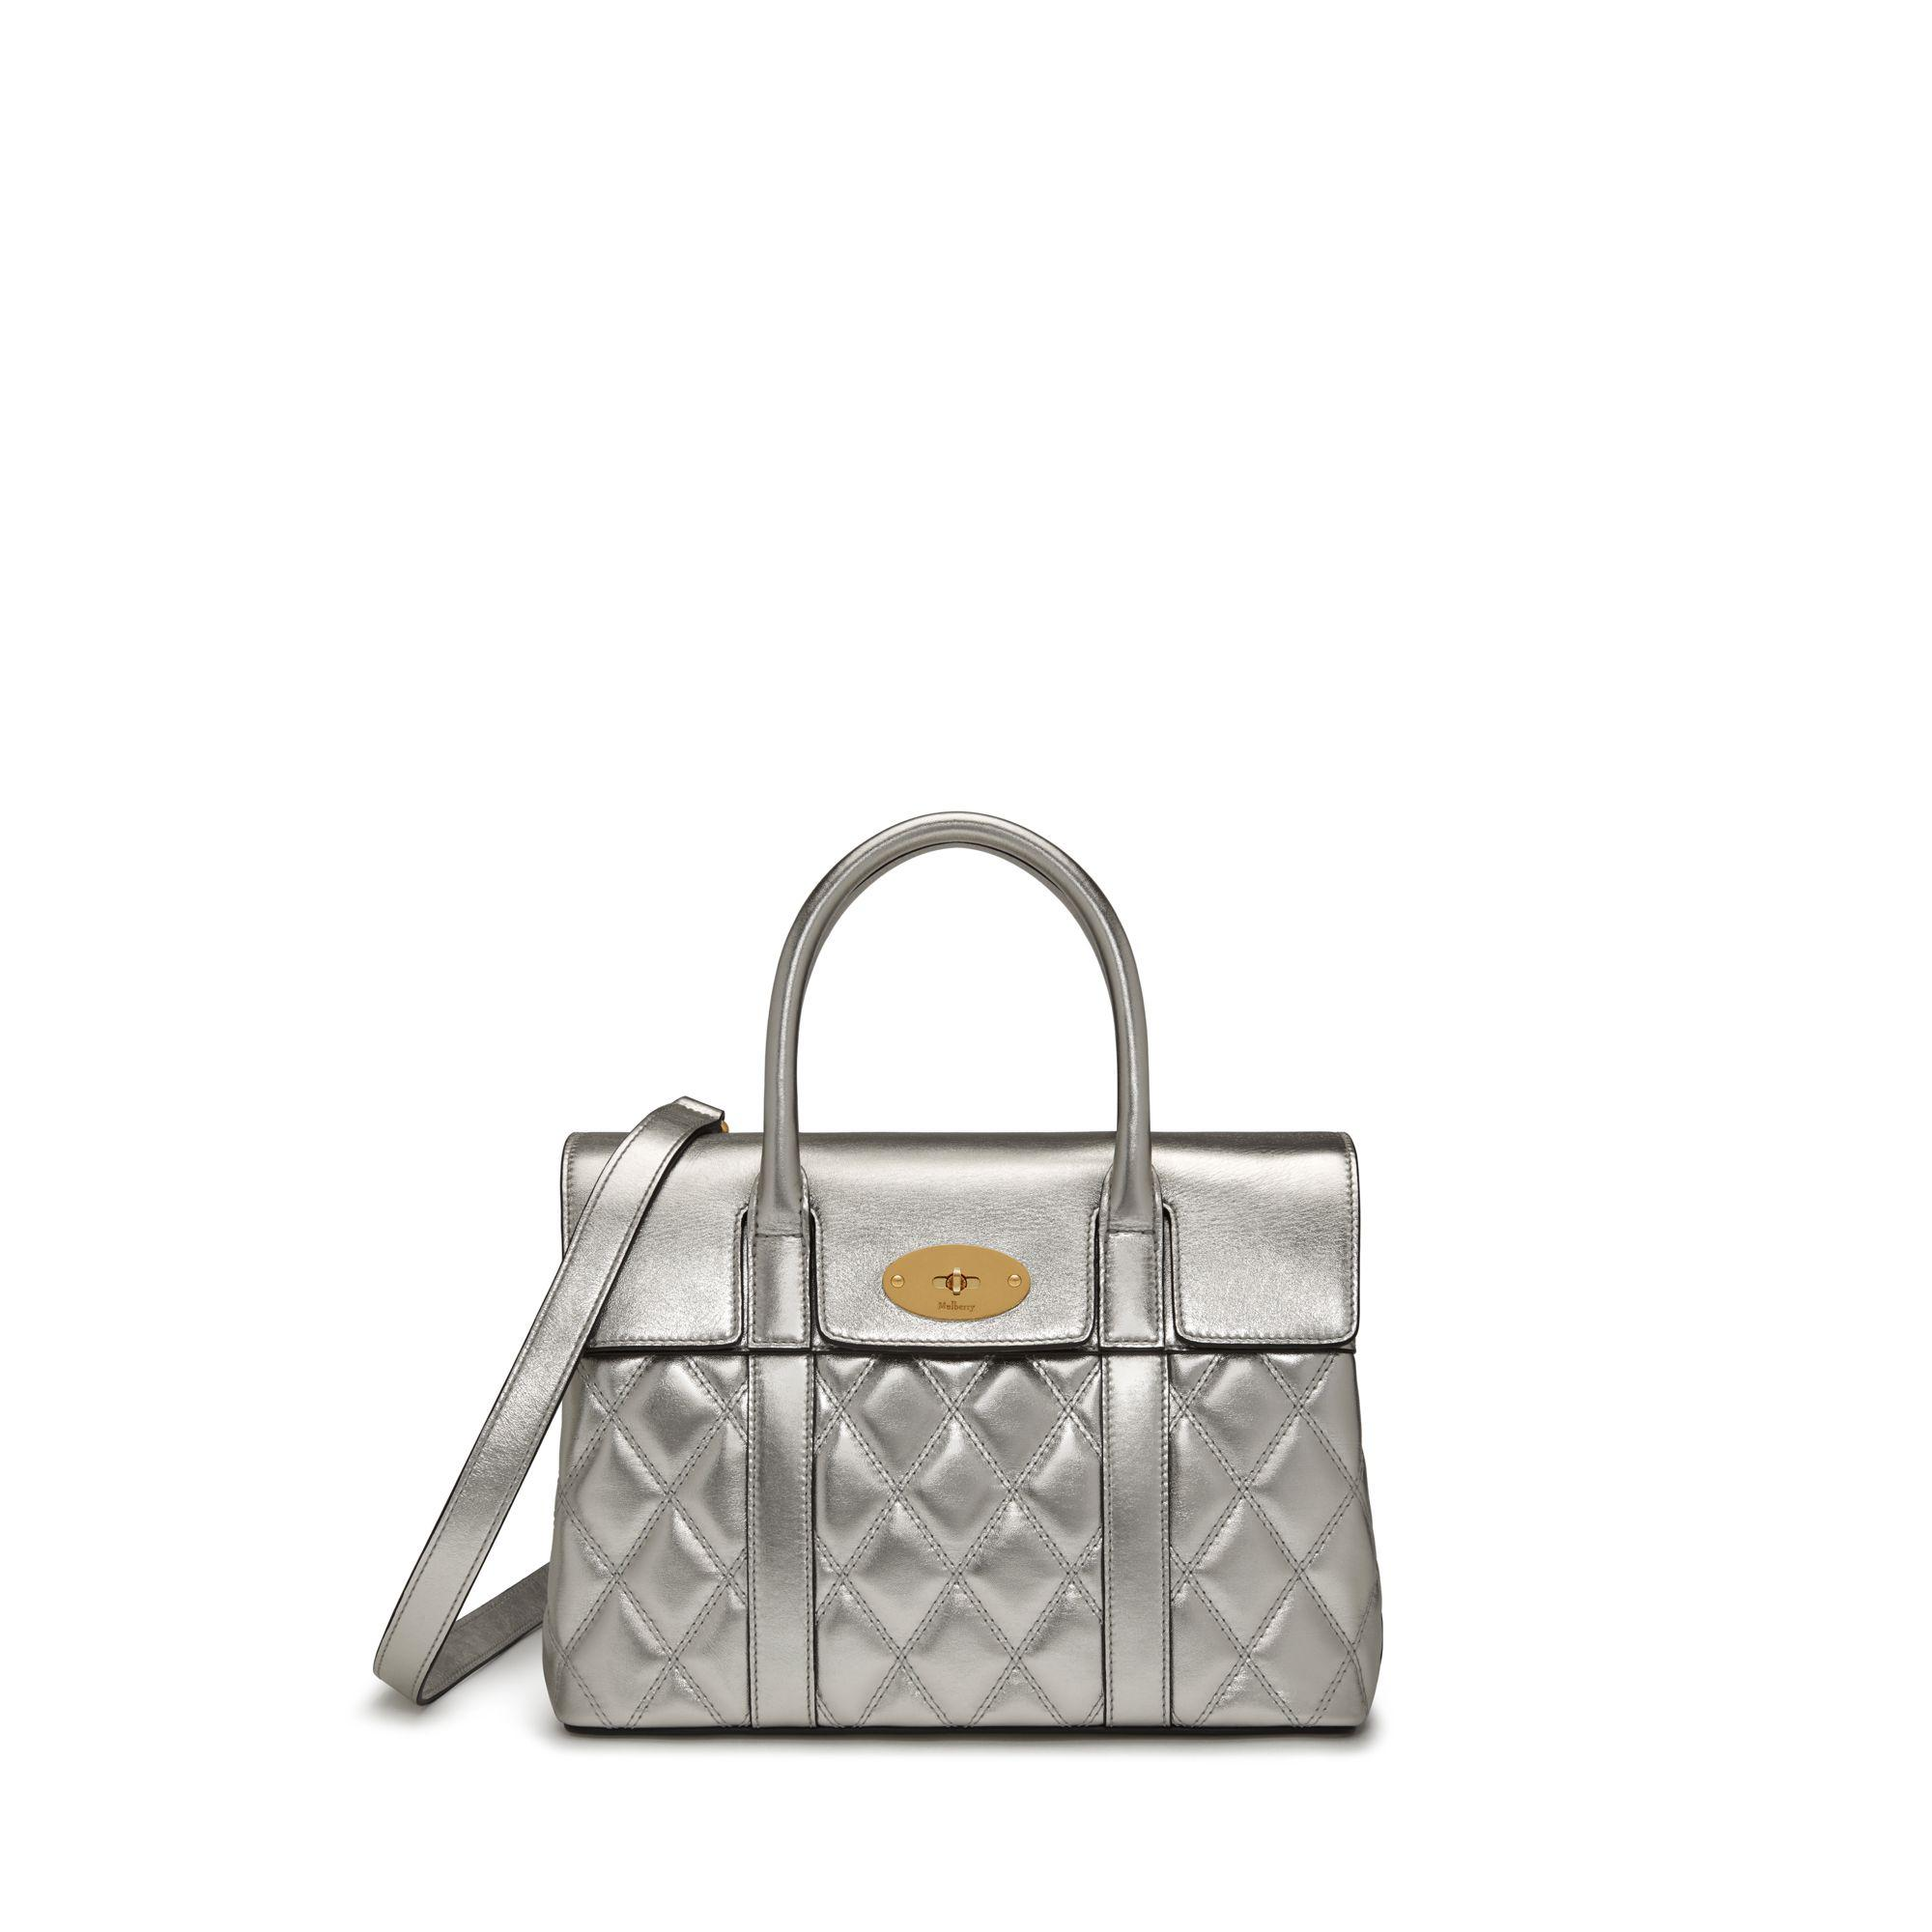 00b775d30d89 Mulberry Small Bayswater In Light Silver Quilted Smooth Calf in ...